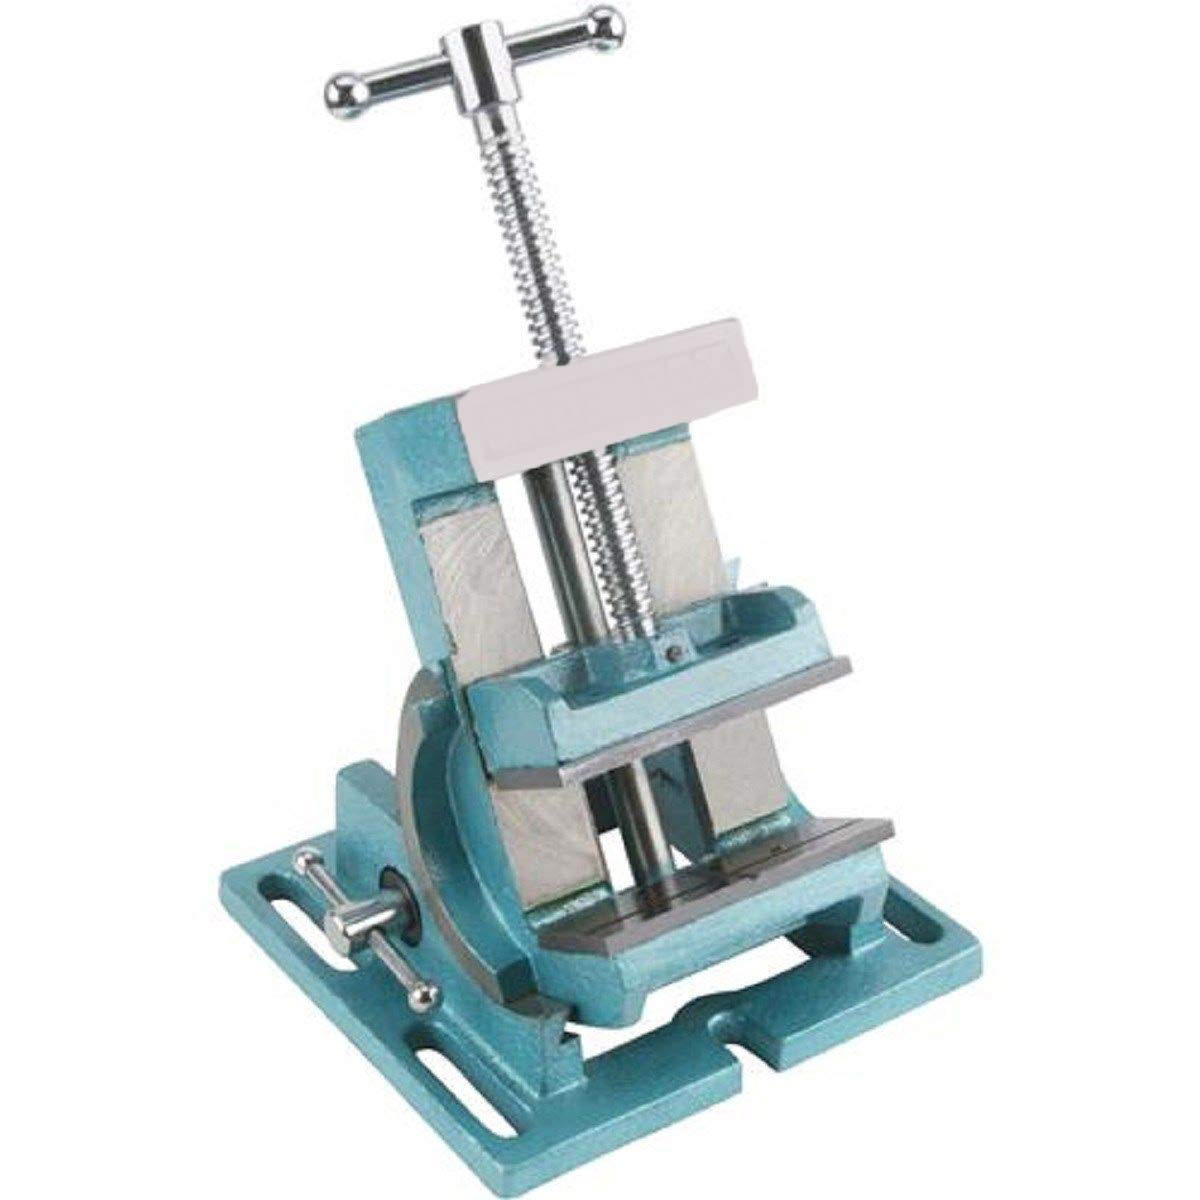 COLIBROX>4 INCH SMALL ANGLE TILT TILTING VISE FOR DRILL PRESS>This Angle Vise offers a full 90° adjustment from horizontal to vertical with easy-to-read scale and indexing pin set for every 15°.